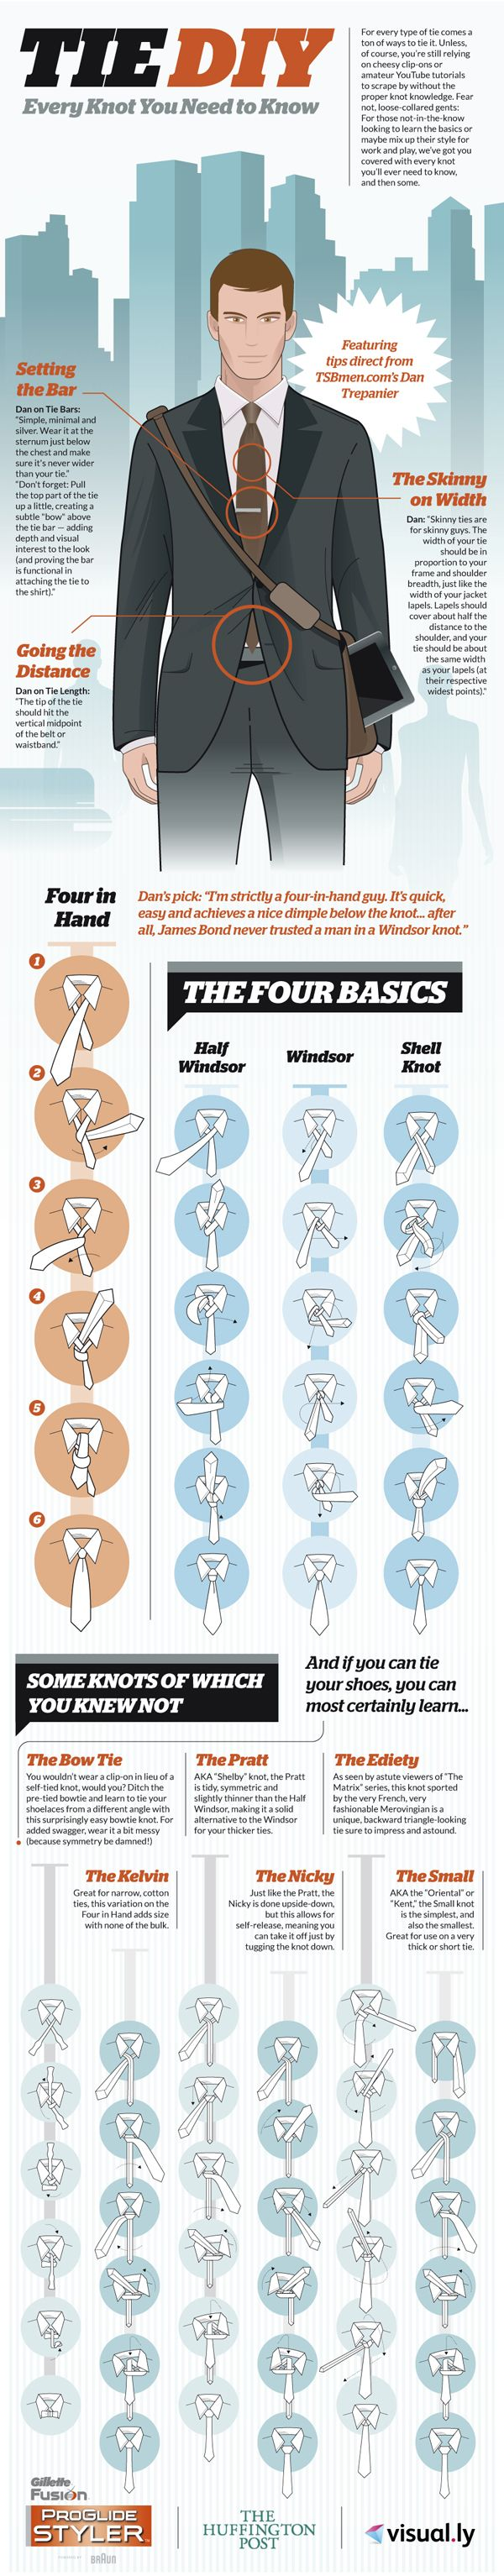 18 Best My Style Images On Pinterest Man Men Clothes And Balthus Tie Knot How To A Necktie Agreeordie Todo Lo Que Debes Saber Sobre La Corbata Infografia Infographic